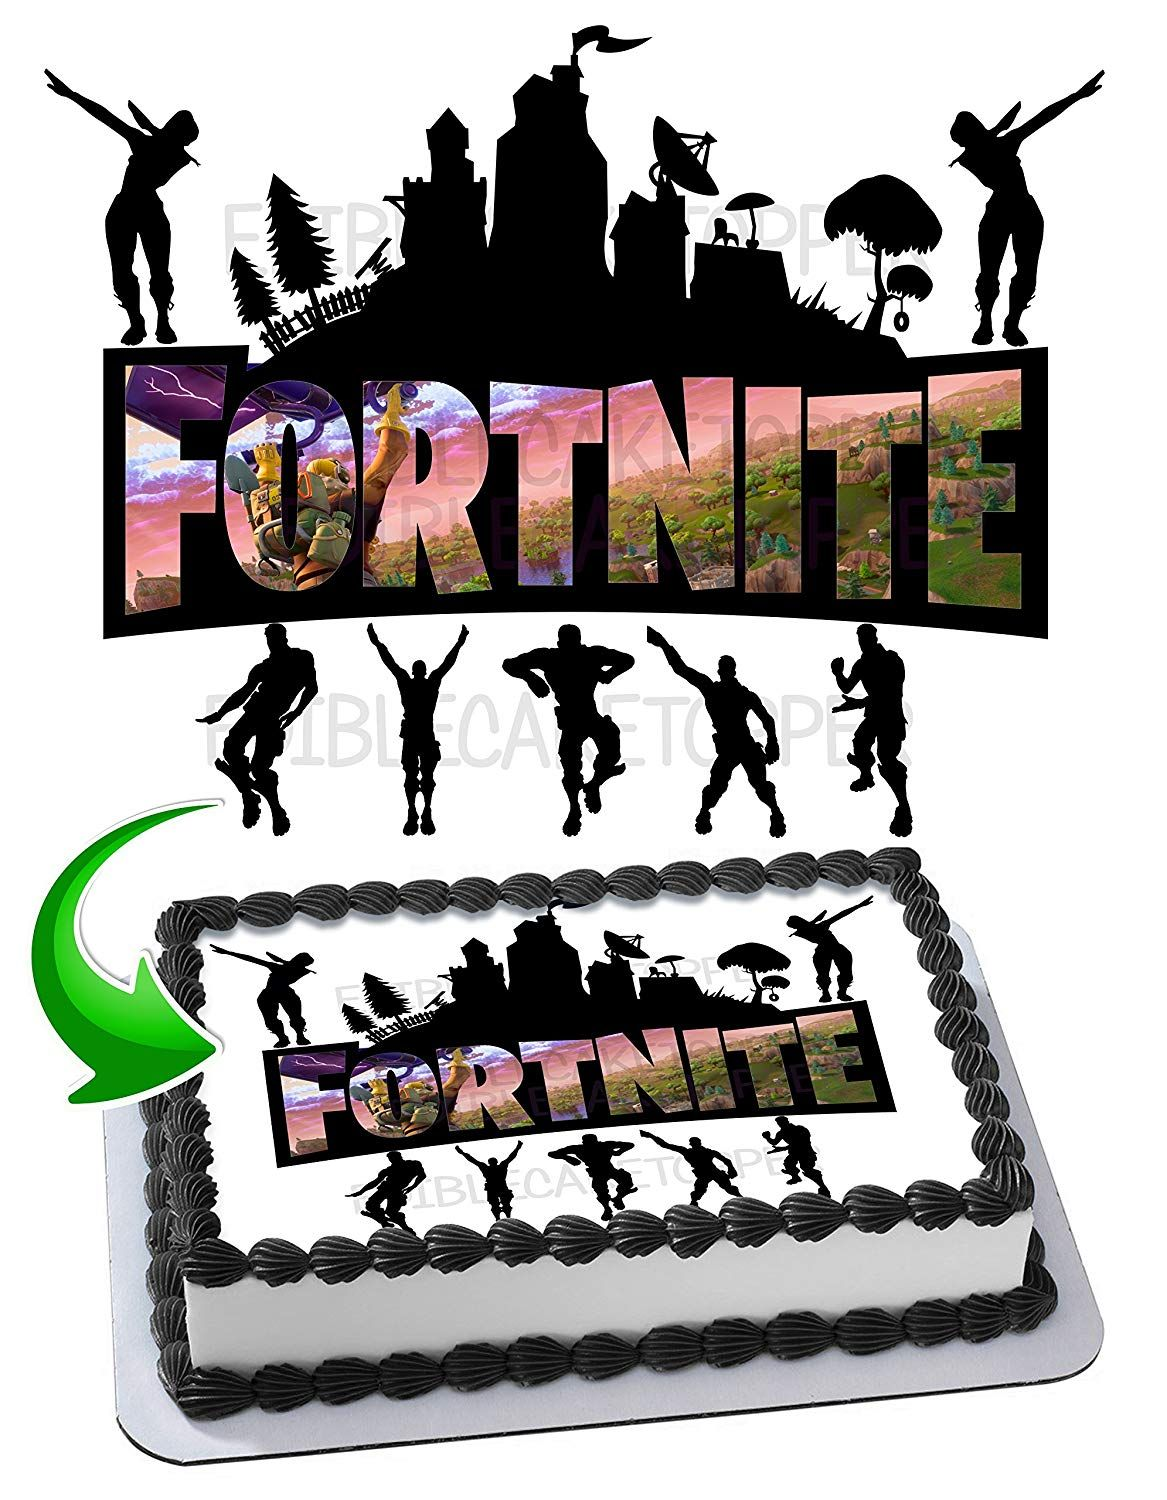 Edible Fortnite Cake Topper Simply Cover Any 1 4 Sheet Cake For A